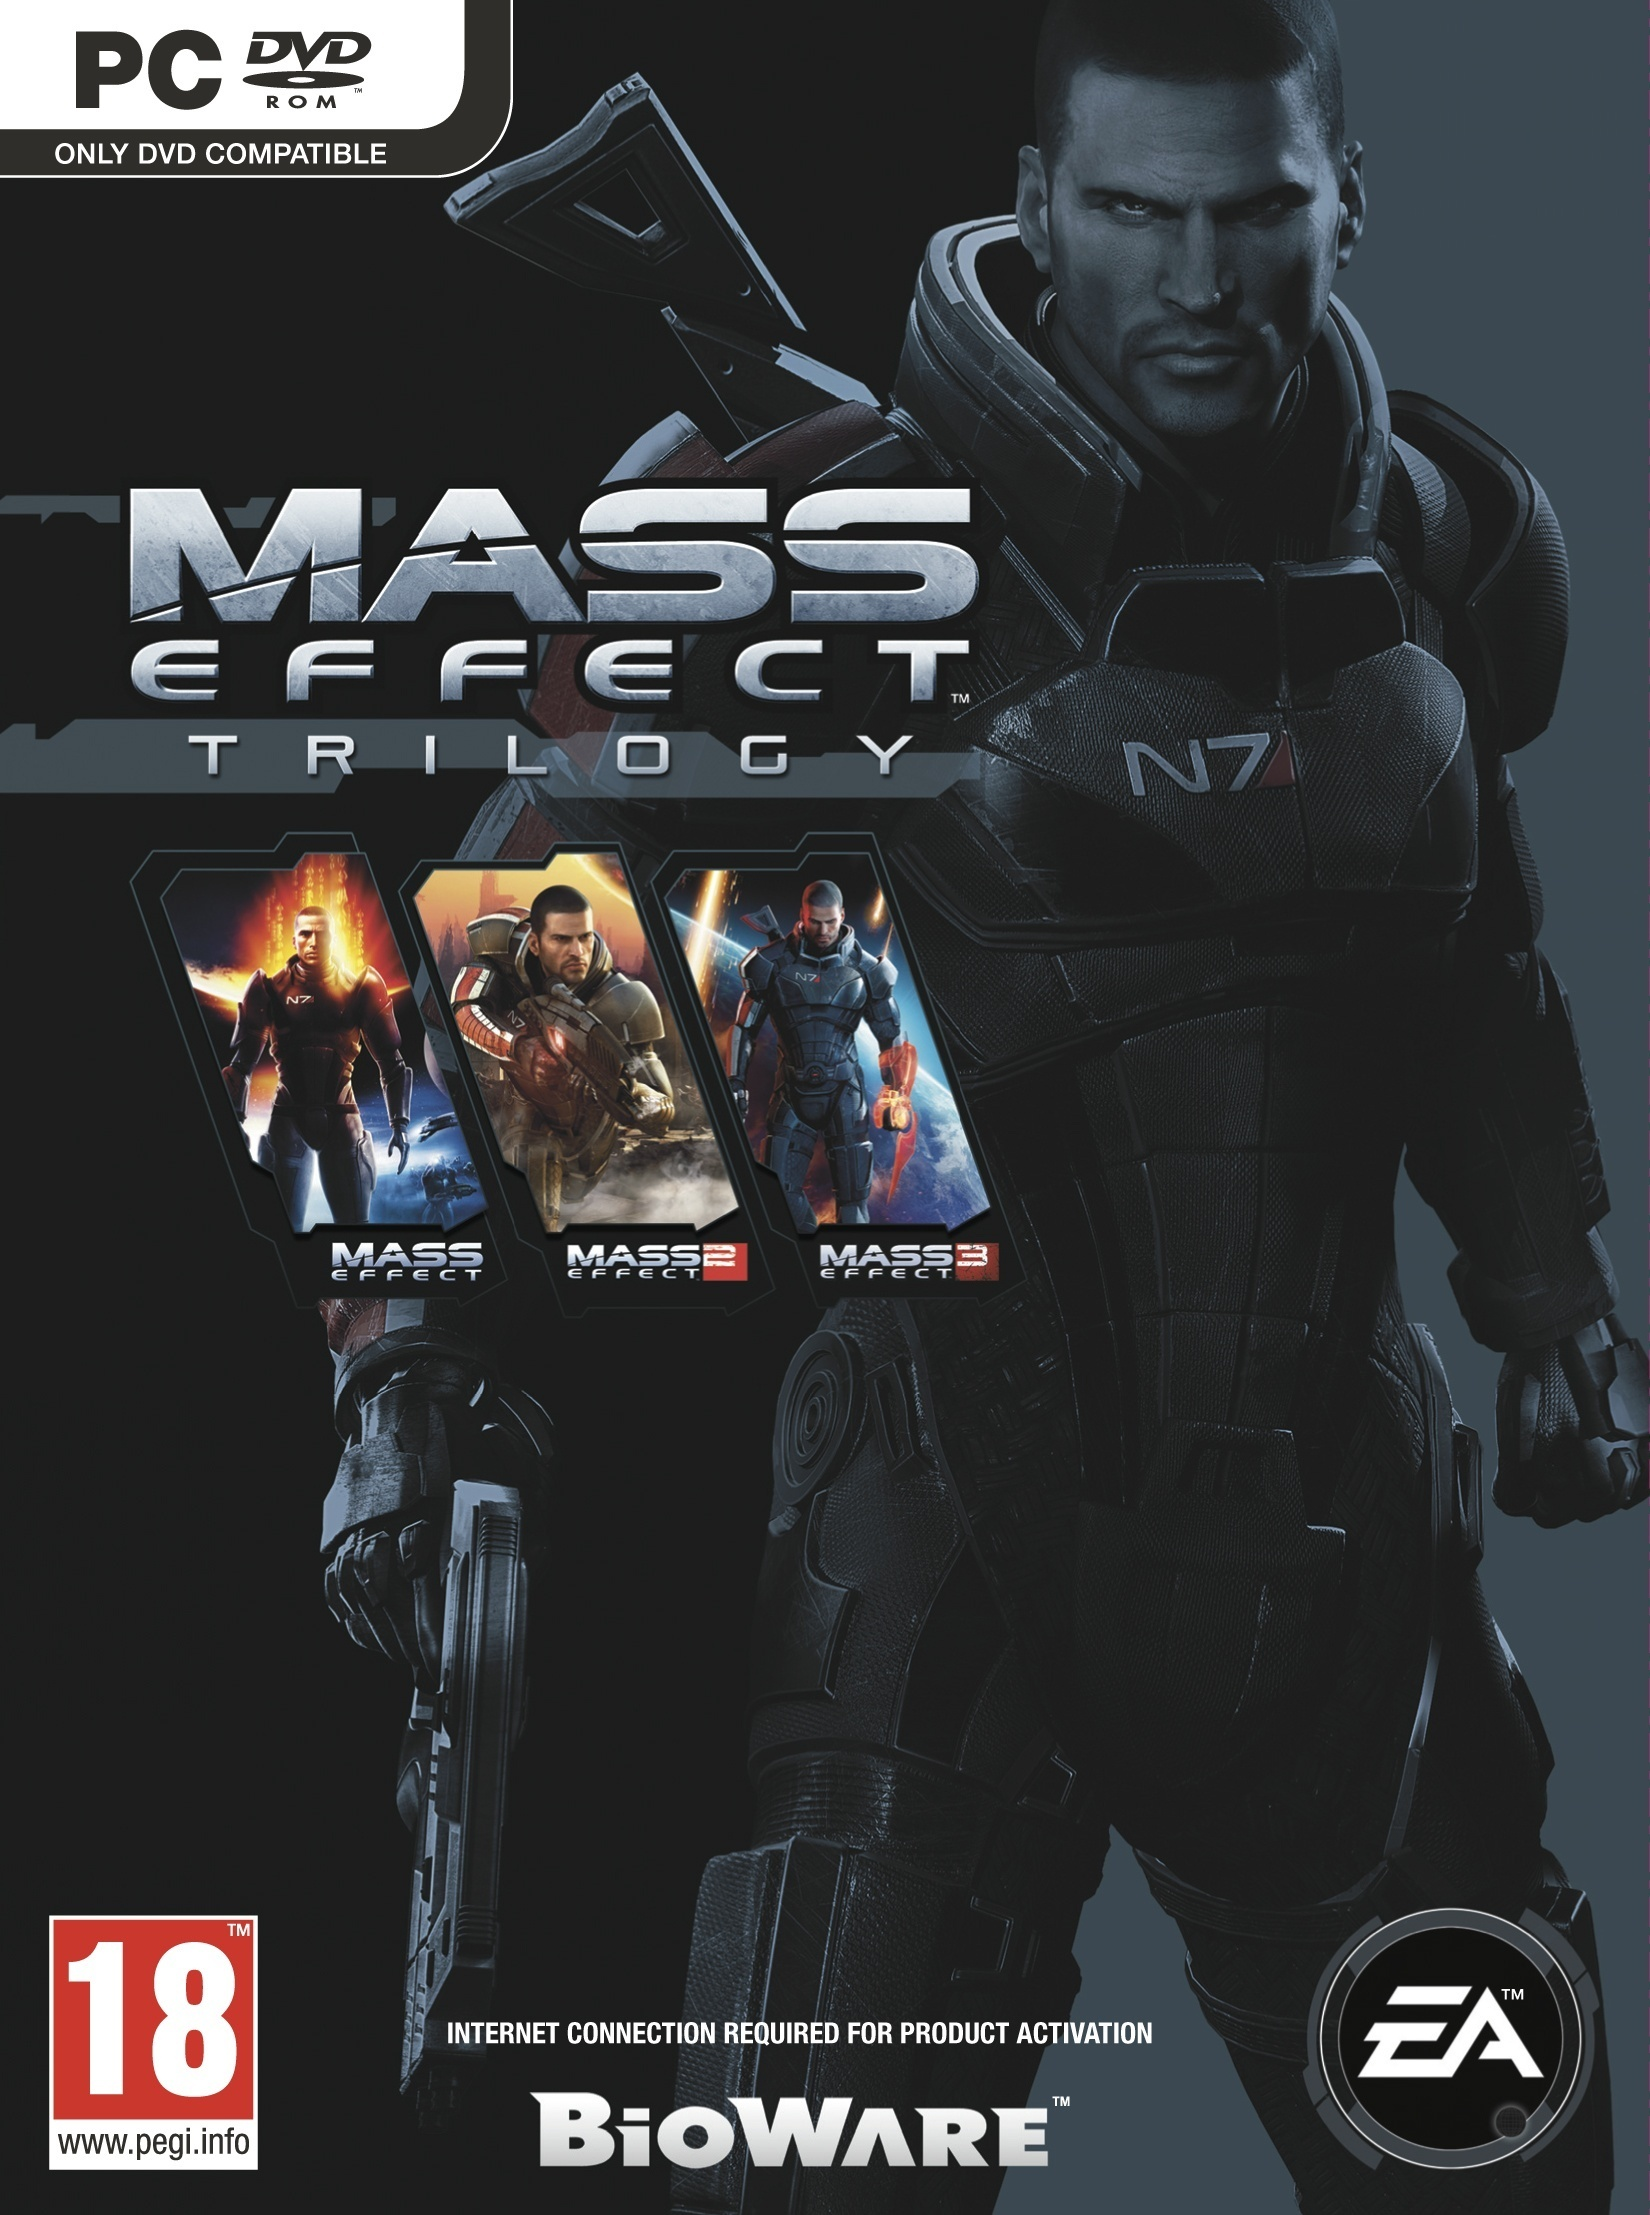 Mass effect 2 ps3 how to download  porncraft images